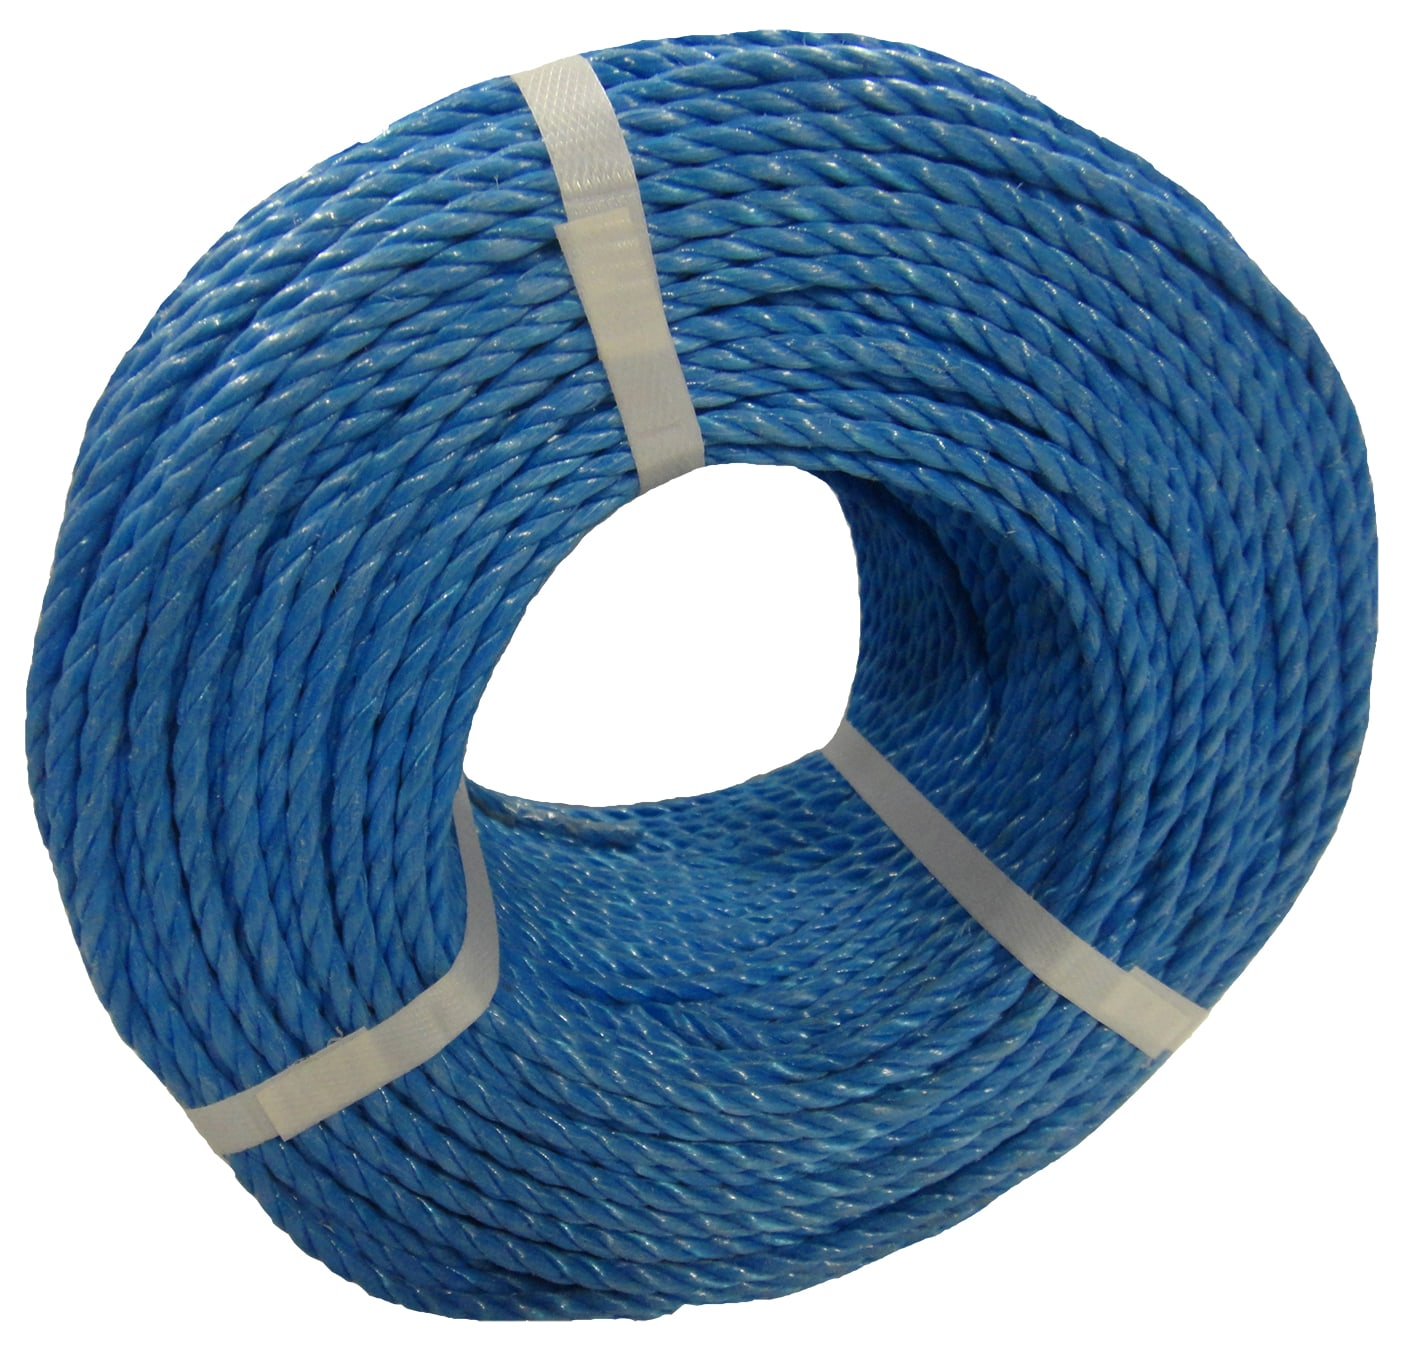 Polypropylene rope - 6mm Dia Blue x 220m Coil